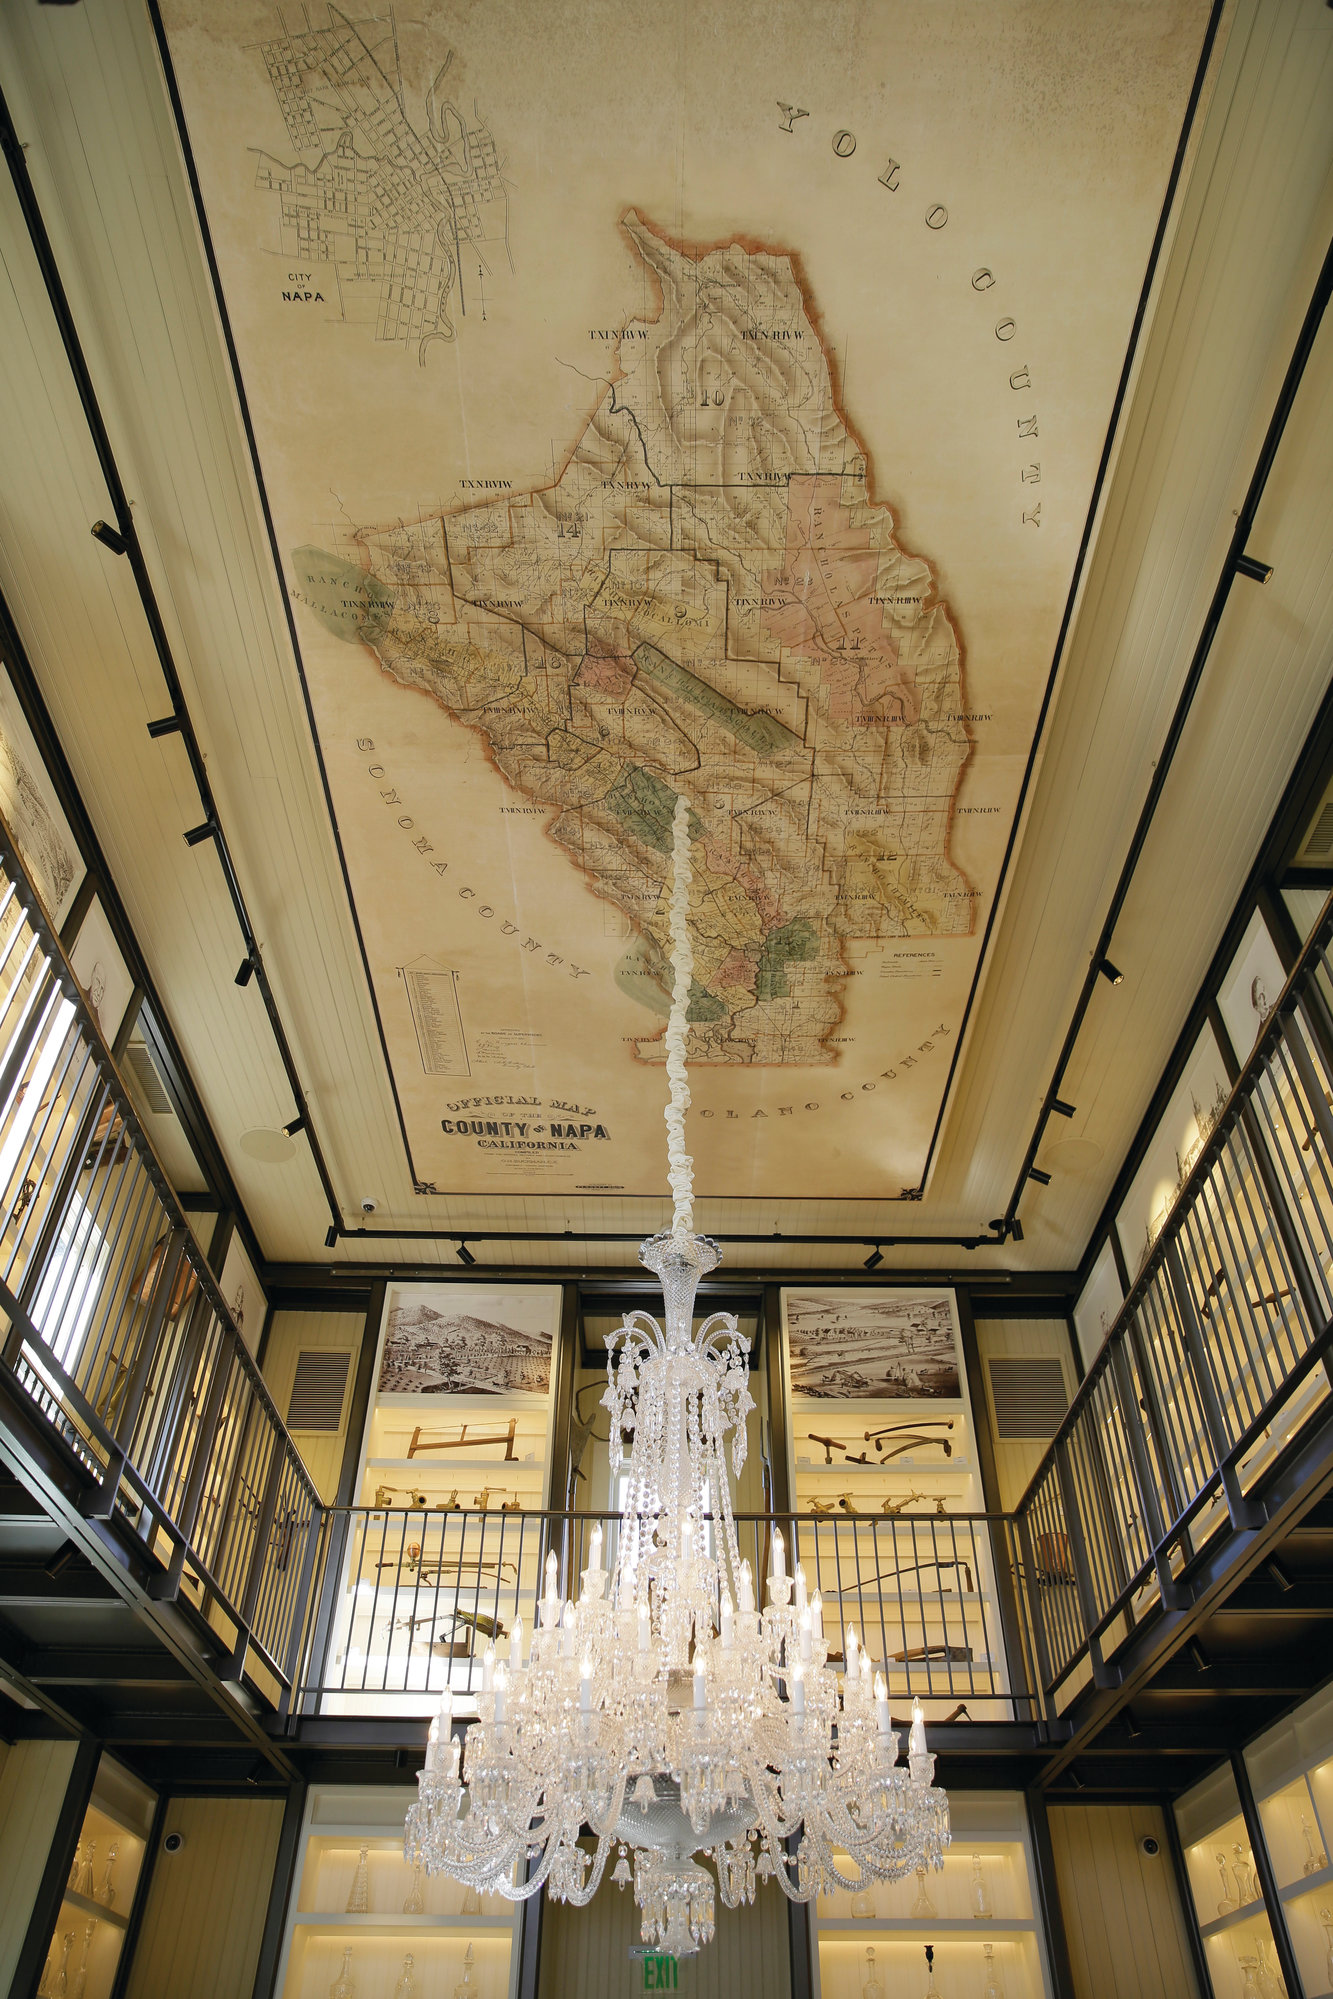 The Associated Press In this photo taken Wednesday, June 5, 2019, a 48-light Baccarat crystal chandelier and a reproduction of an 1895 map of Napa County on canvas hang from the ceiling of the 1881 Napa in Oakville, Calif.